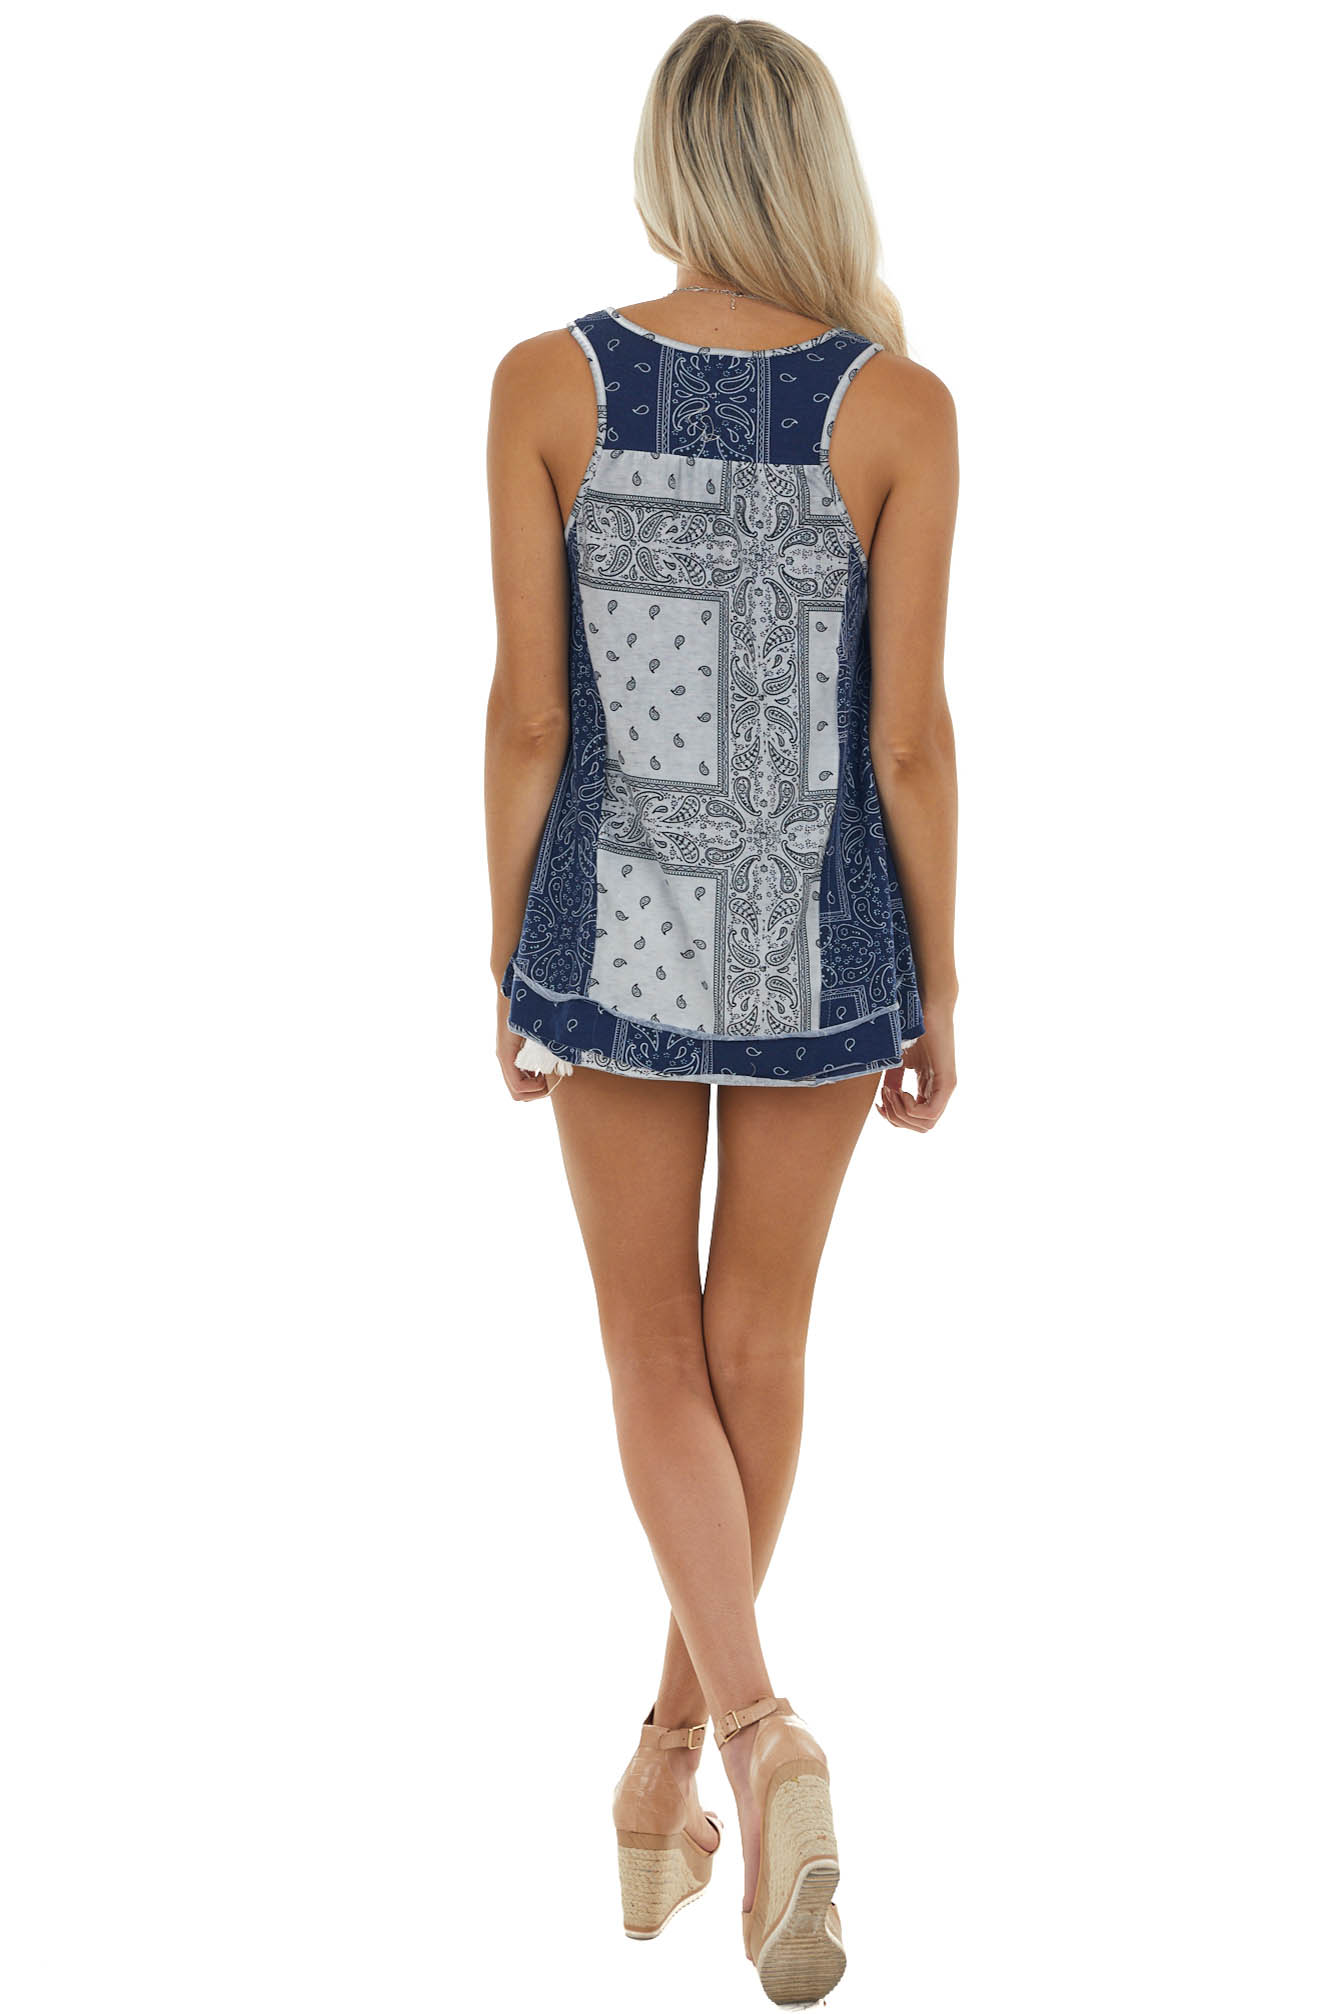 Navy and Slate Grey Paisley Print Button Up Knit Tank Top